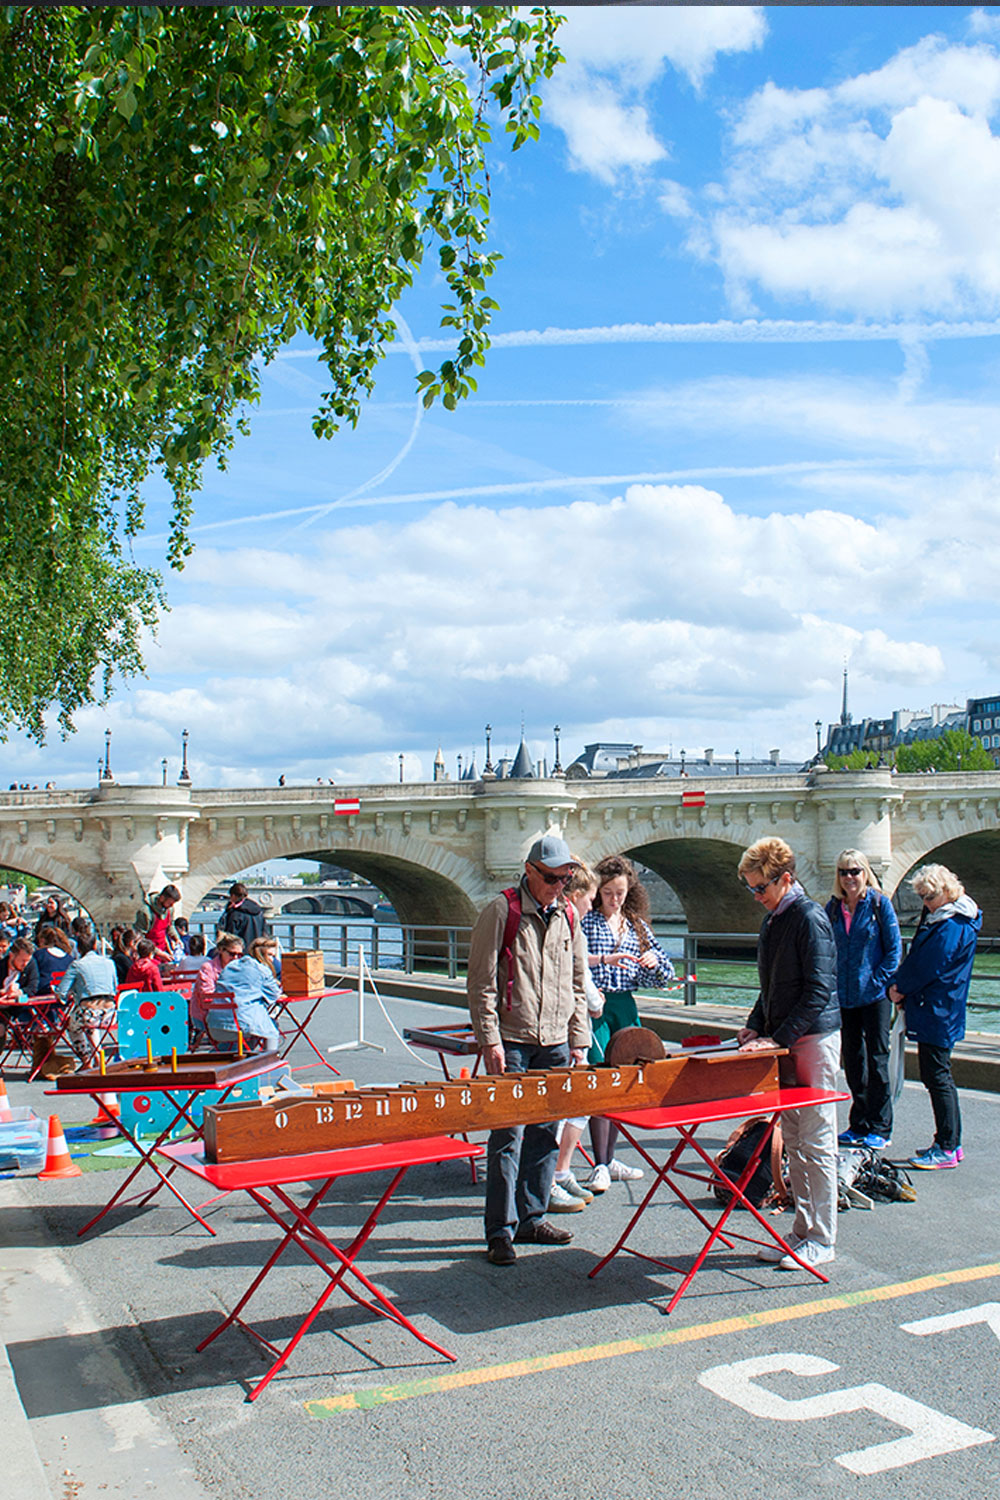 People meeting for play games on the quay along the Seine River in Paris